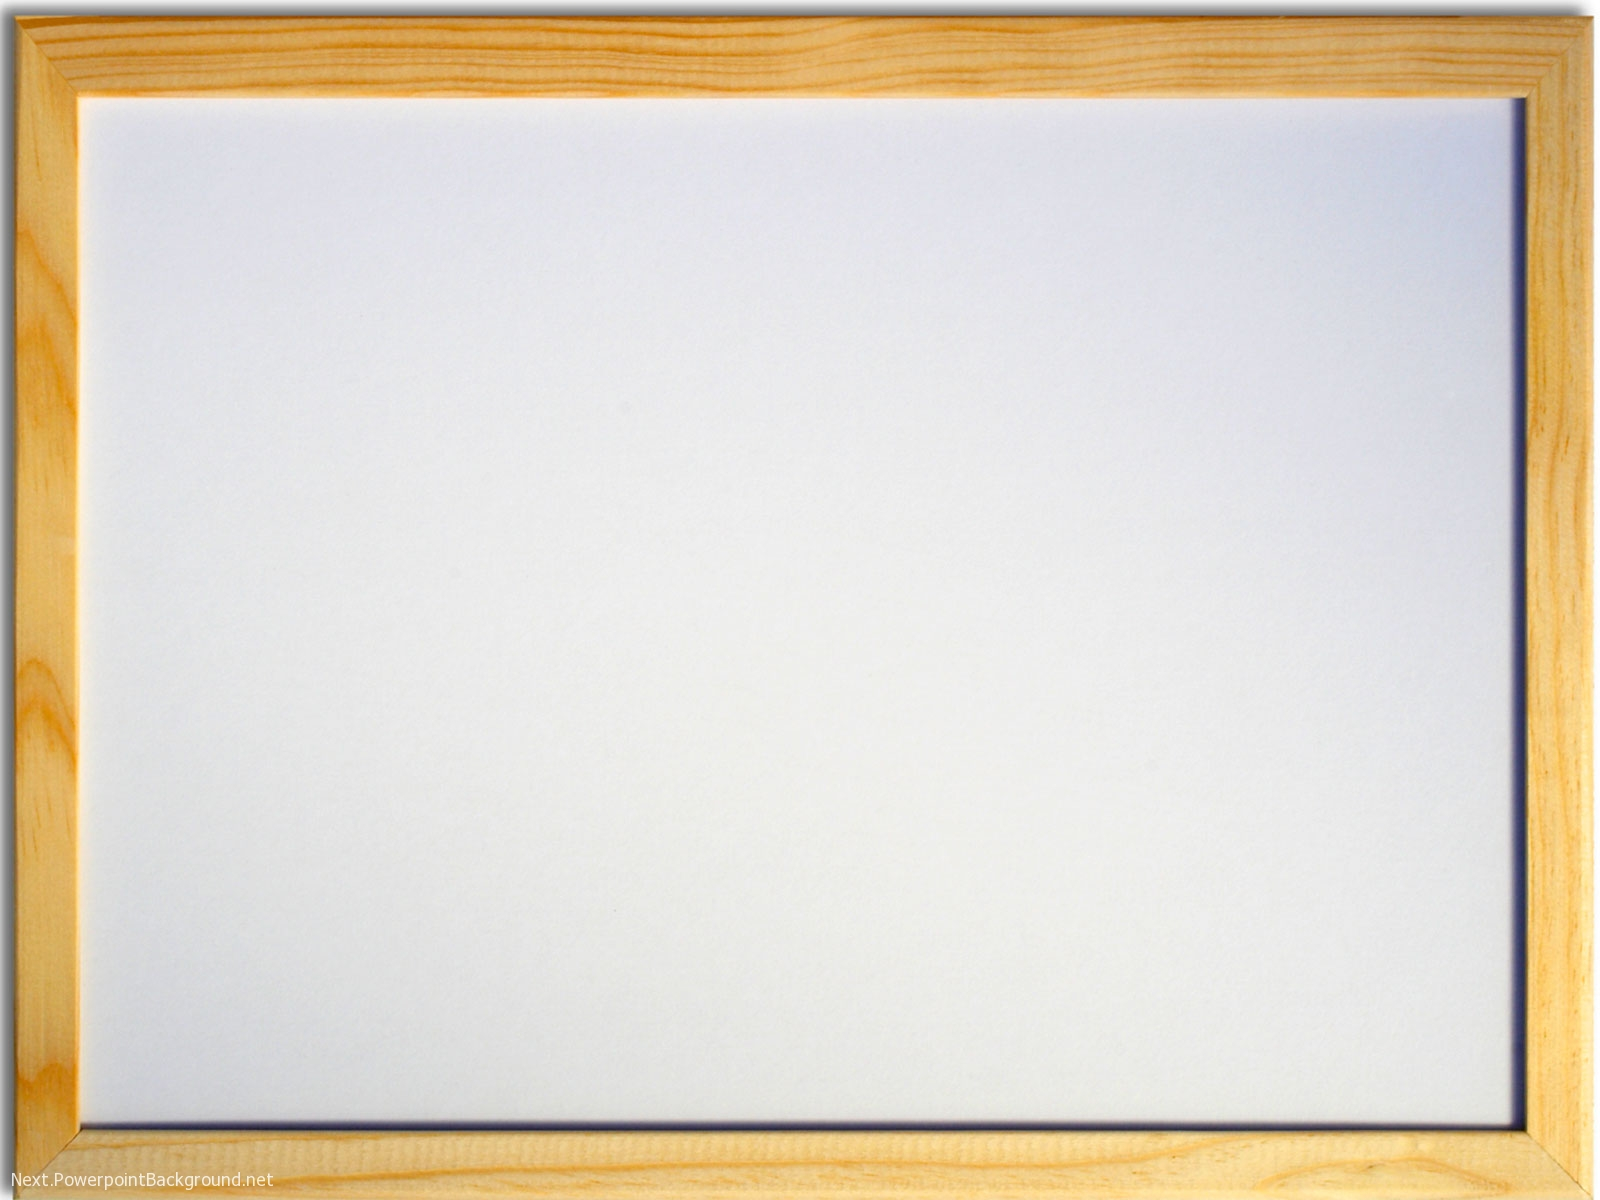 white powerpoint background